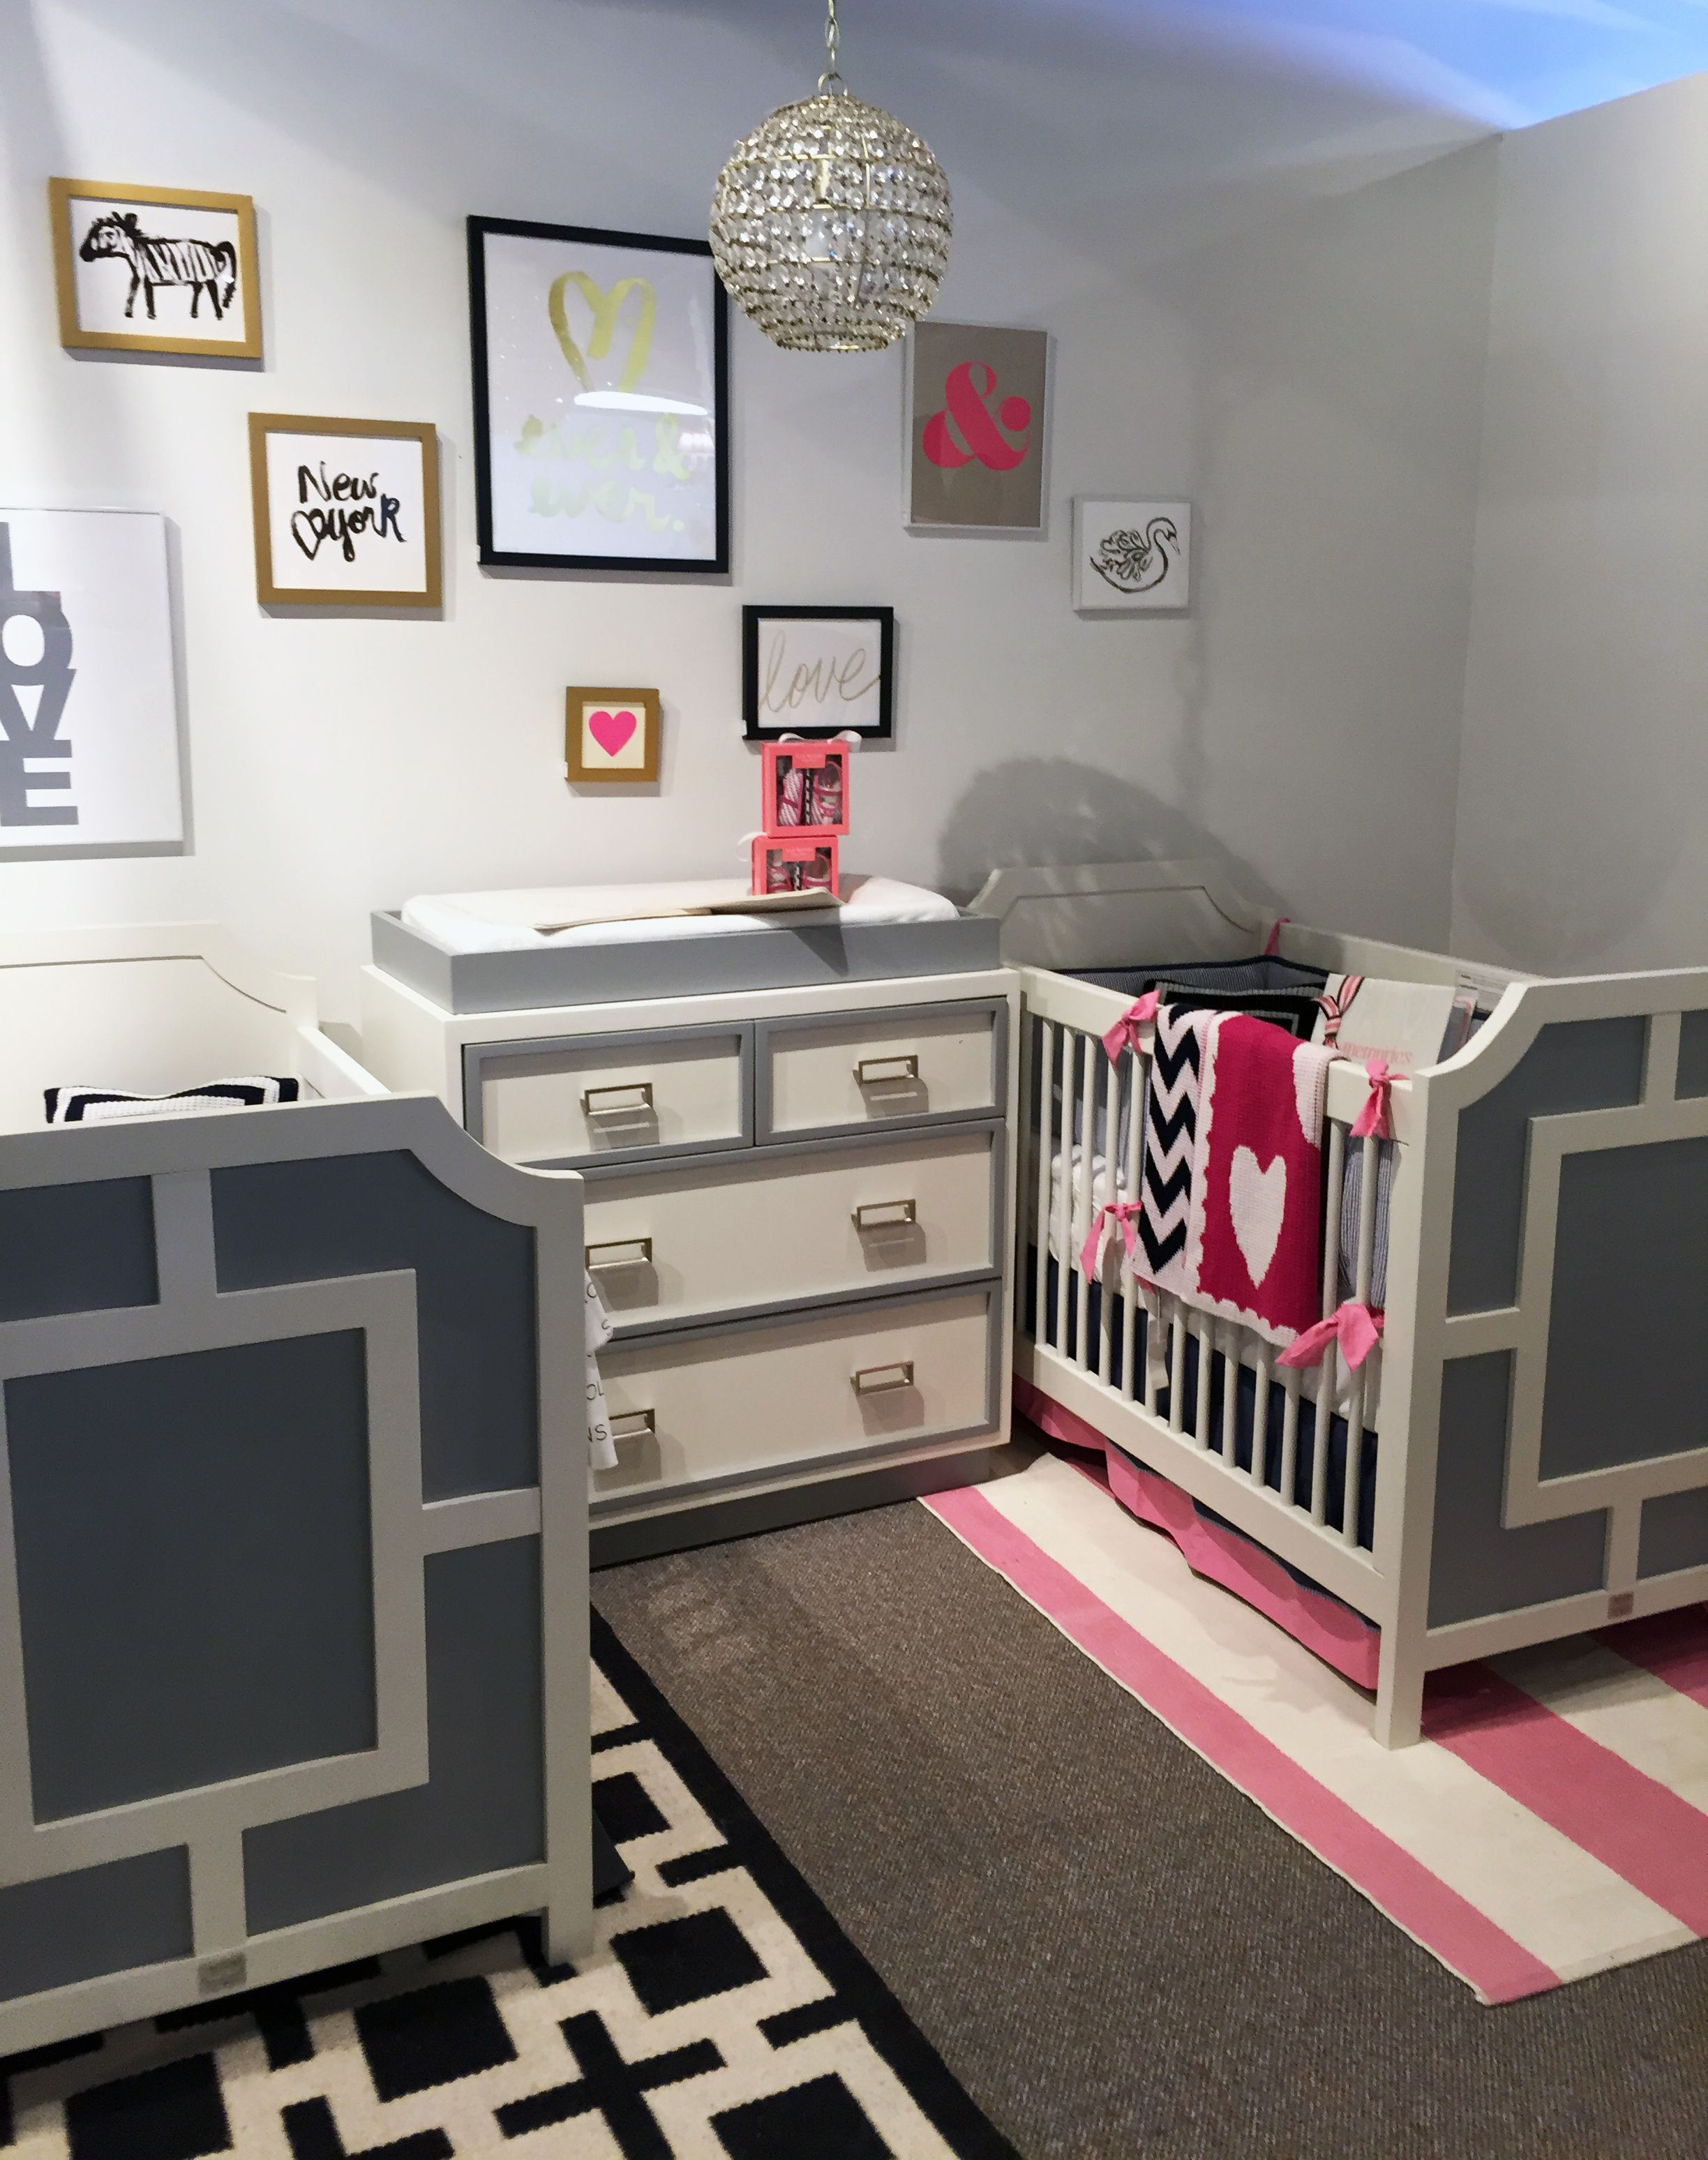 Tips For Decorating For Twins Project Nursery Twin Girls Bedroom Decor Twin Baby Rooms Nursery Room Design